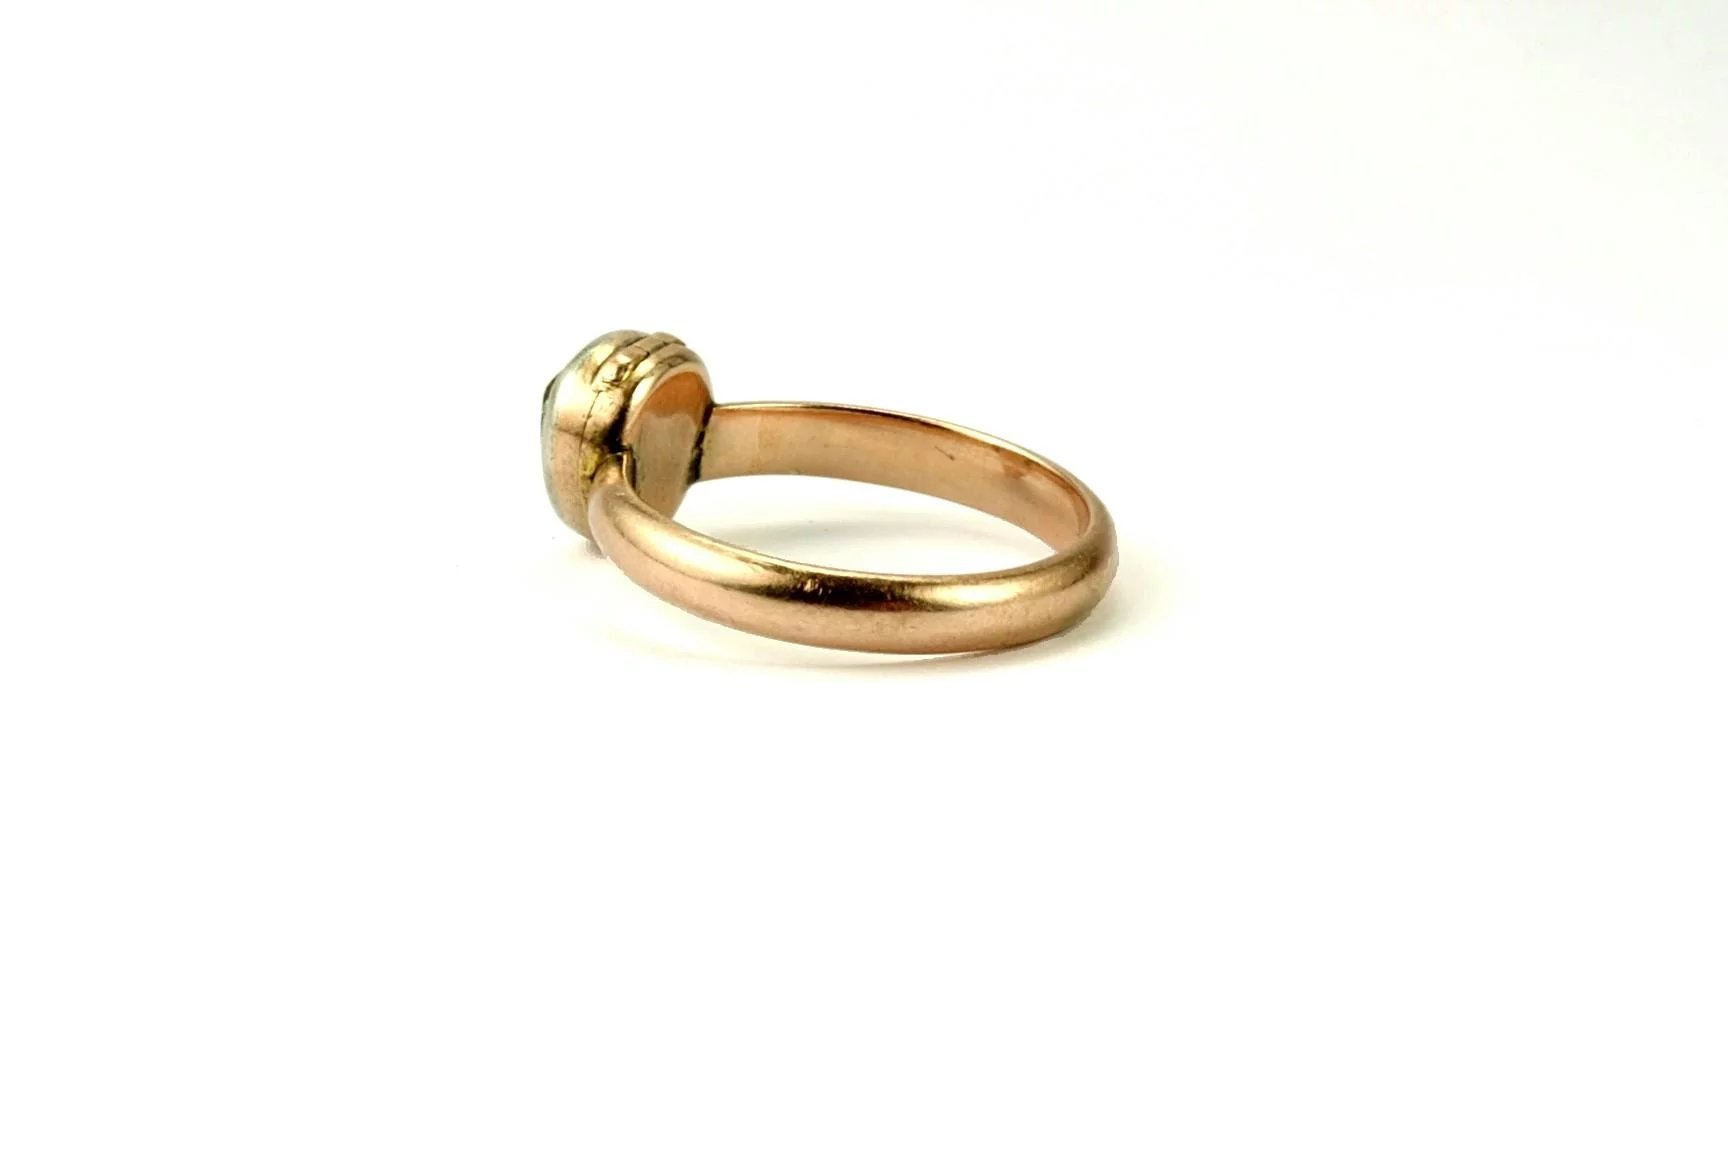 another k the jewellery lot an design size century ring wedding to rings mullets with gold exterior engraved